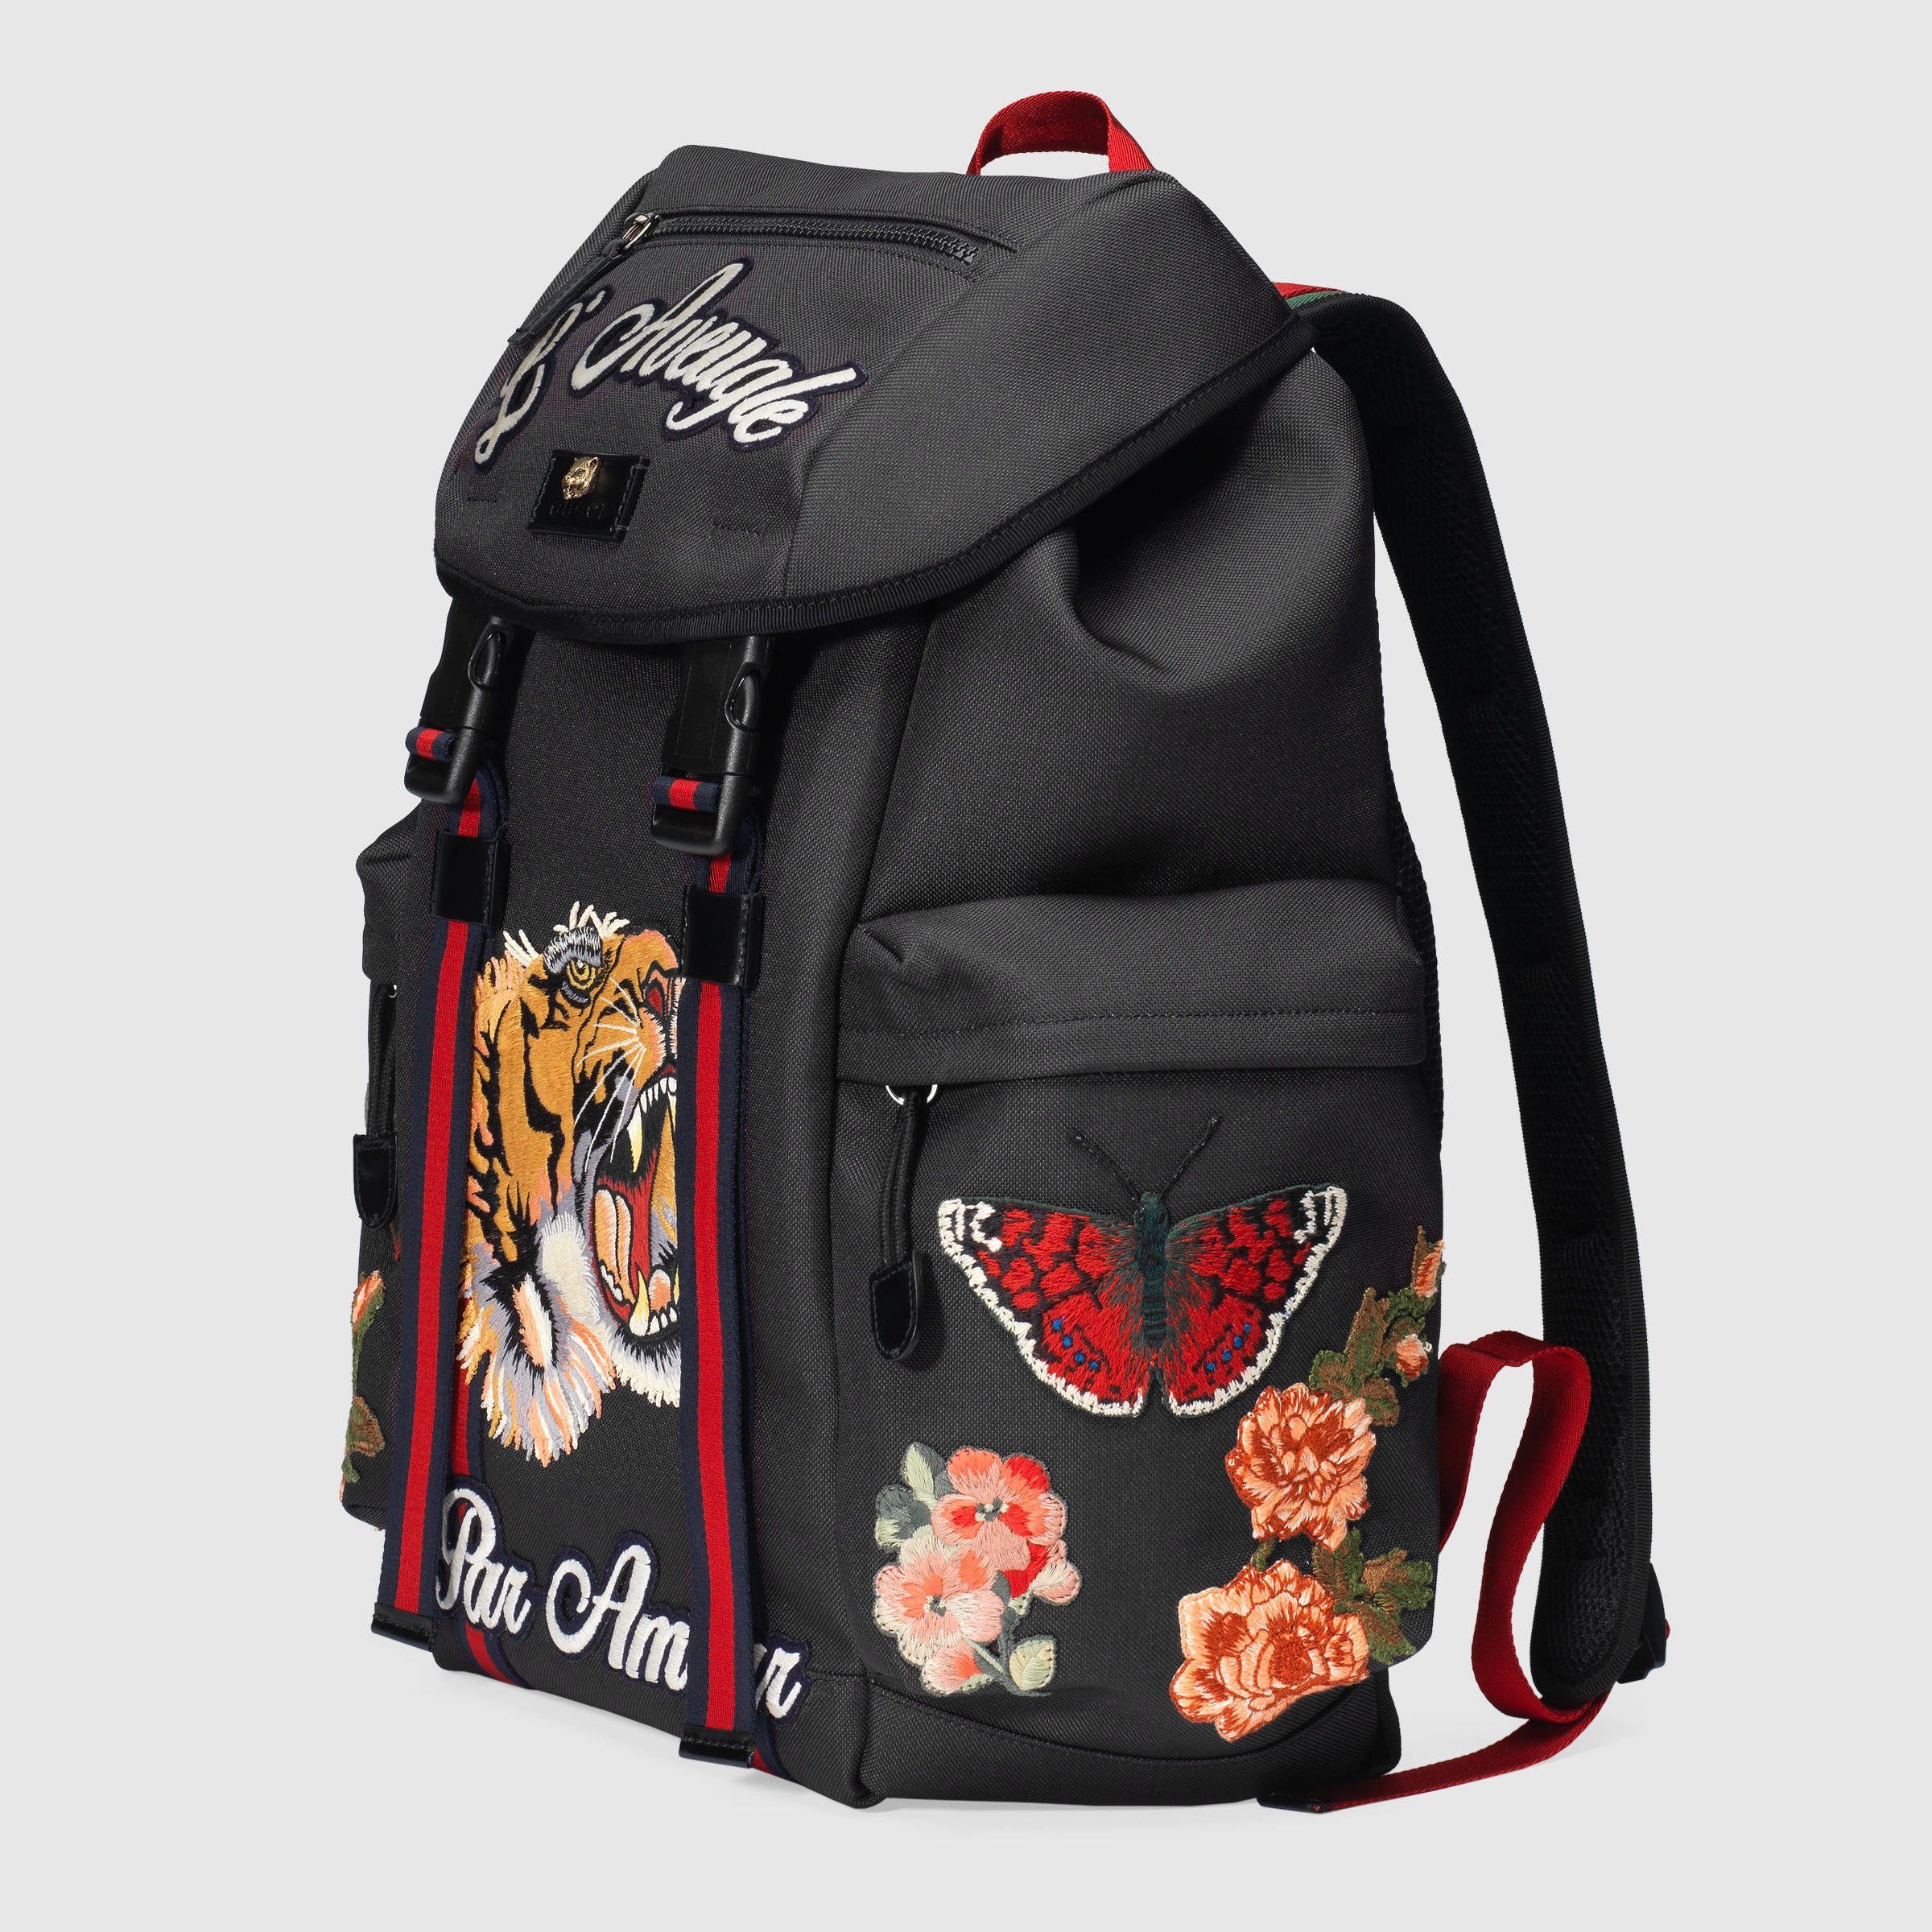 Presenting The Wild Gucci Tiger Techpack With Embroidery